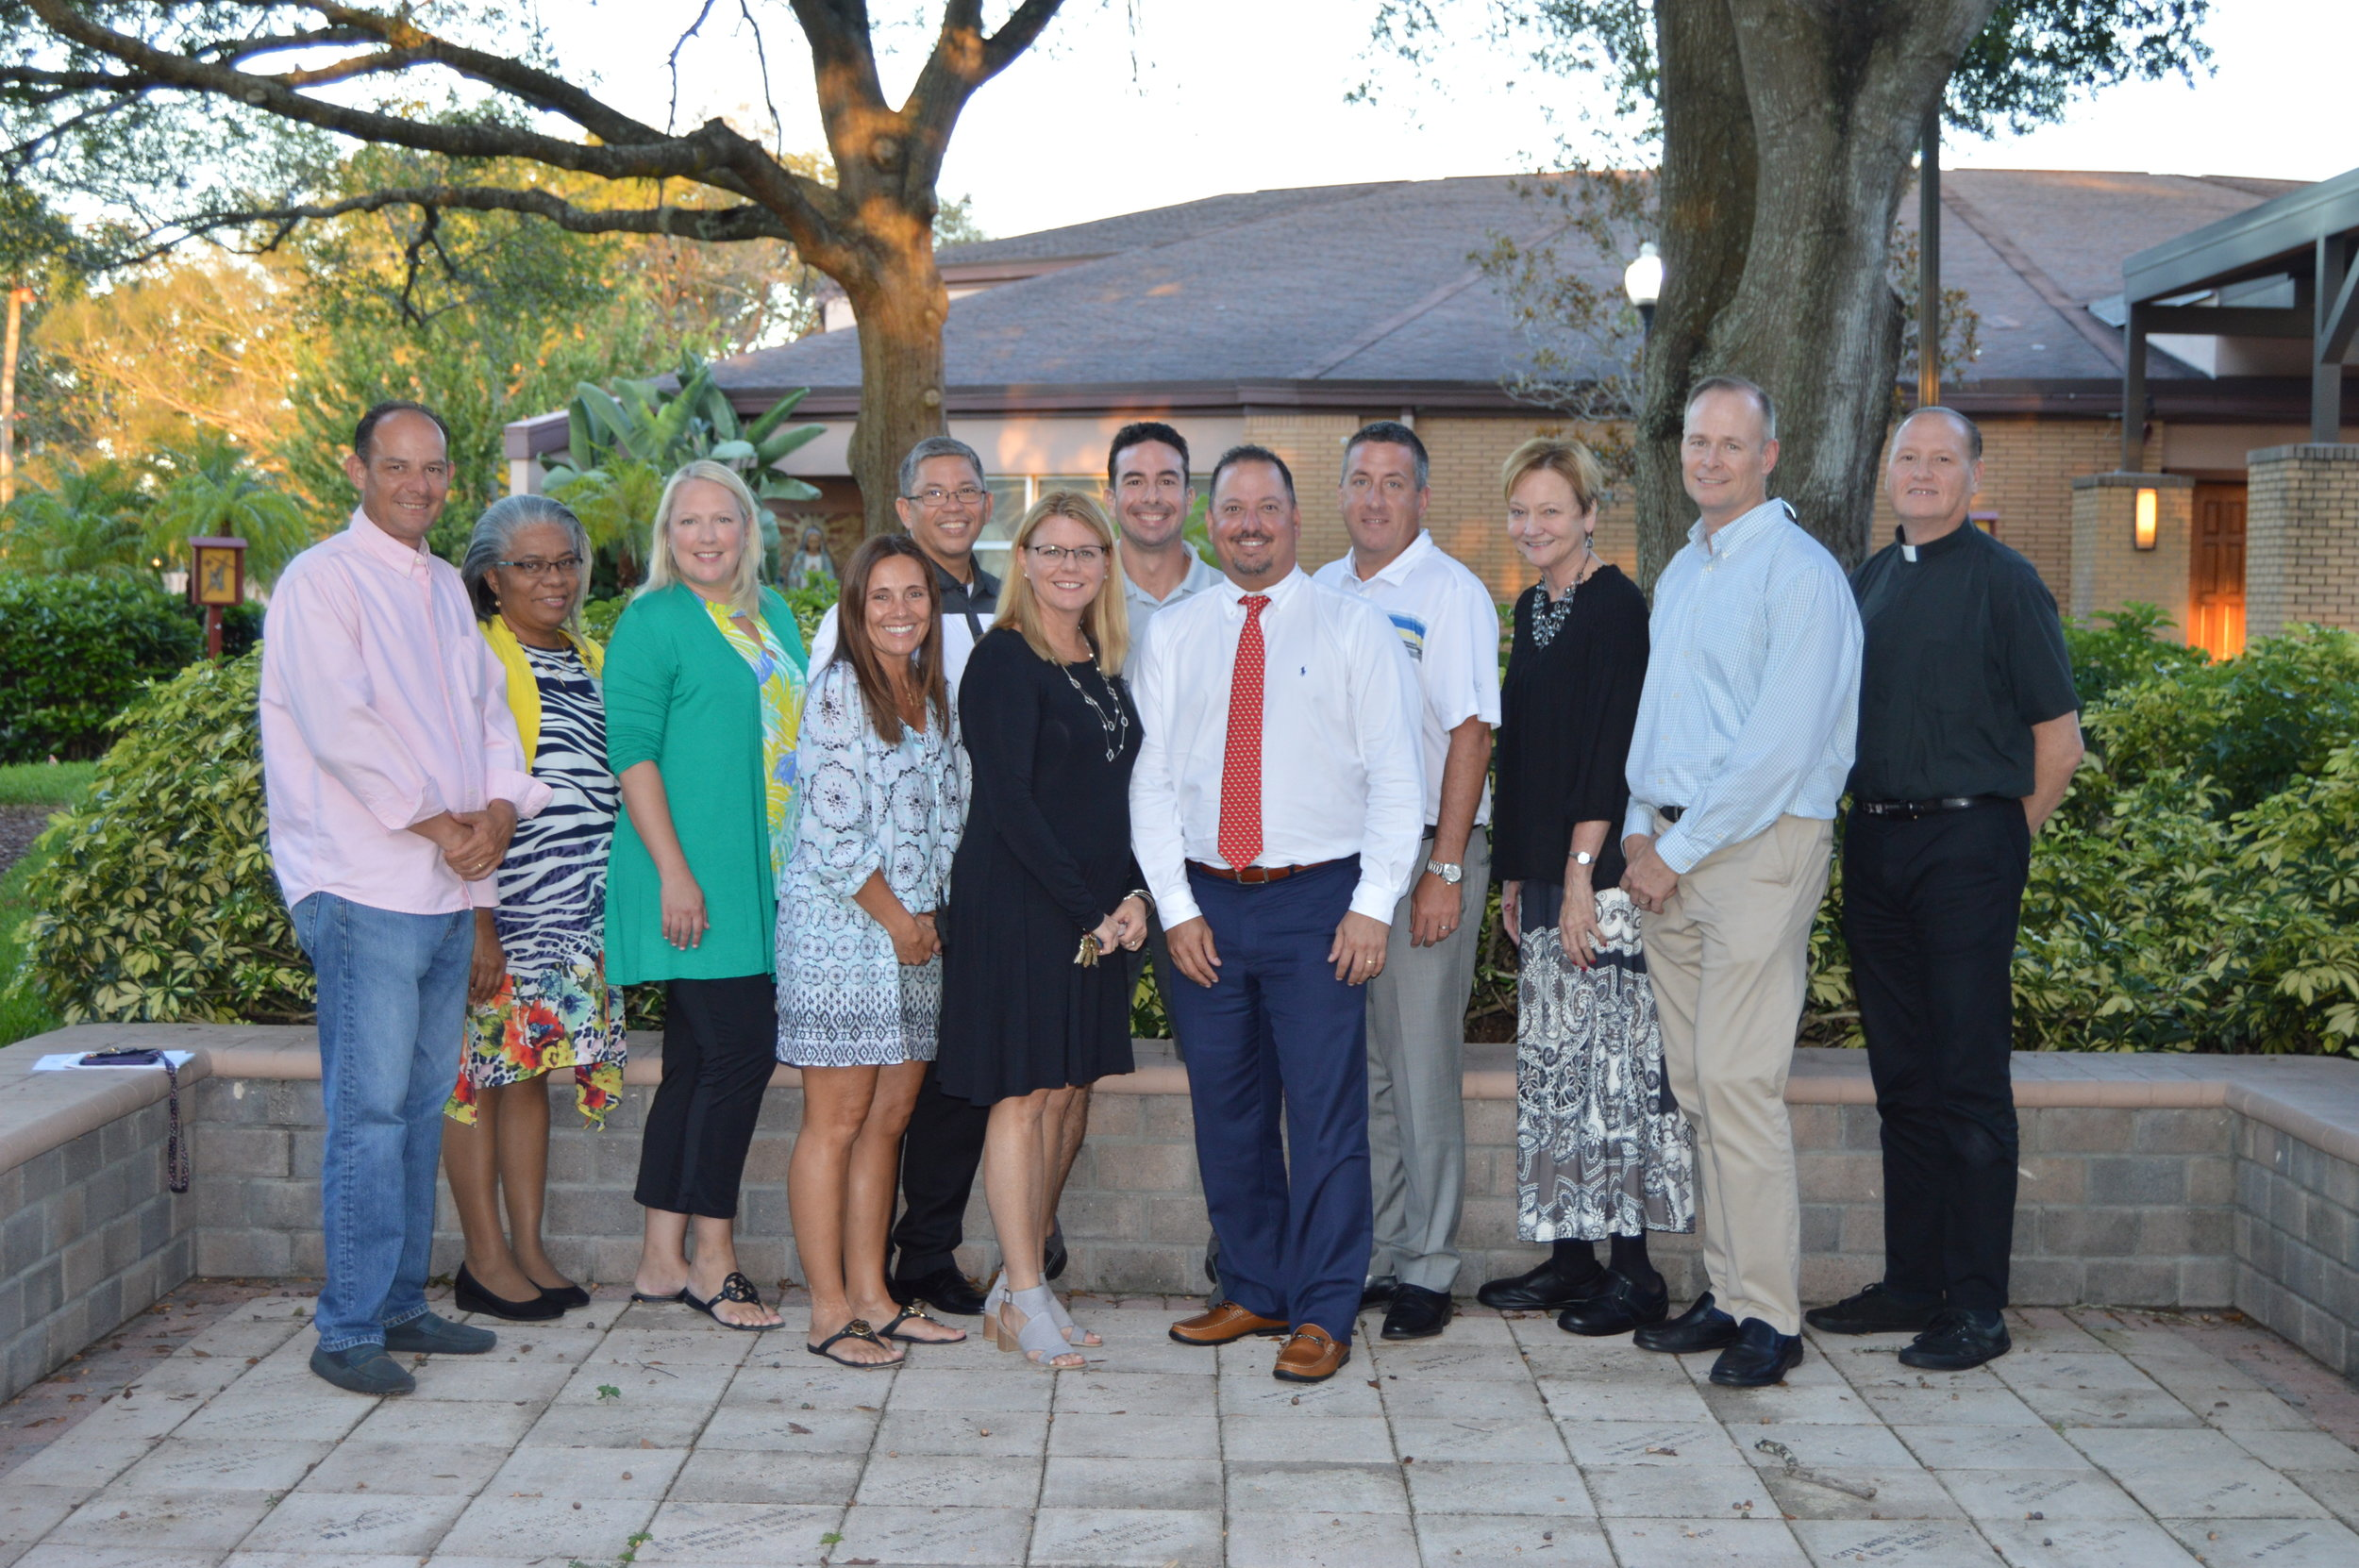 2018-2019 SJVS Board members: Jose Guzman, Joan Lyn, Brigetta Cremata, Shannon Lambert, Vernon Lee, Beth Labreche, Carlos Gregory, Ricardo Villamil, Mike Kennedy, Cathy Marshall, John Gallagher, Fr. Tom Walden (Not pictured: Nancy Barbosa, Maytel Sorondo Bonham, Amando Crematta, Dr. Michael DiMauro and Katie Winemiller.)